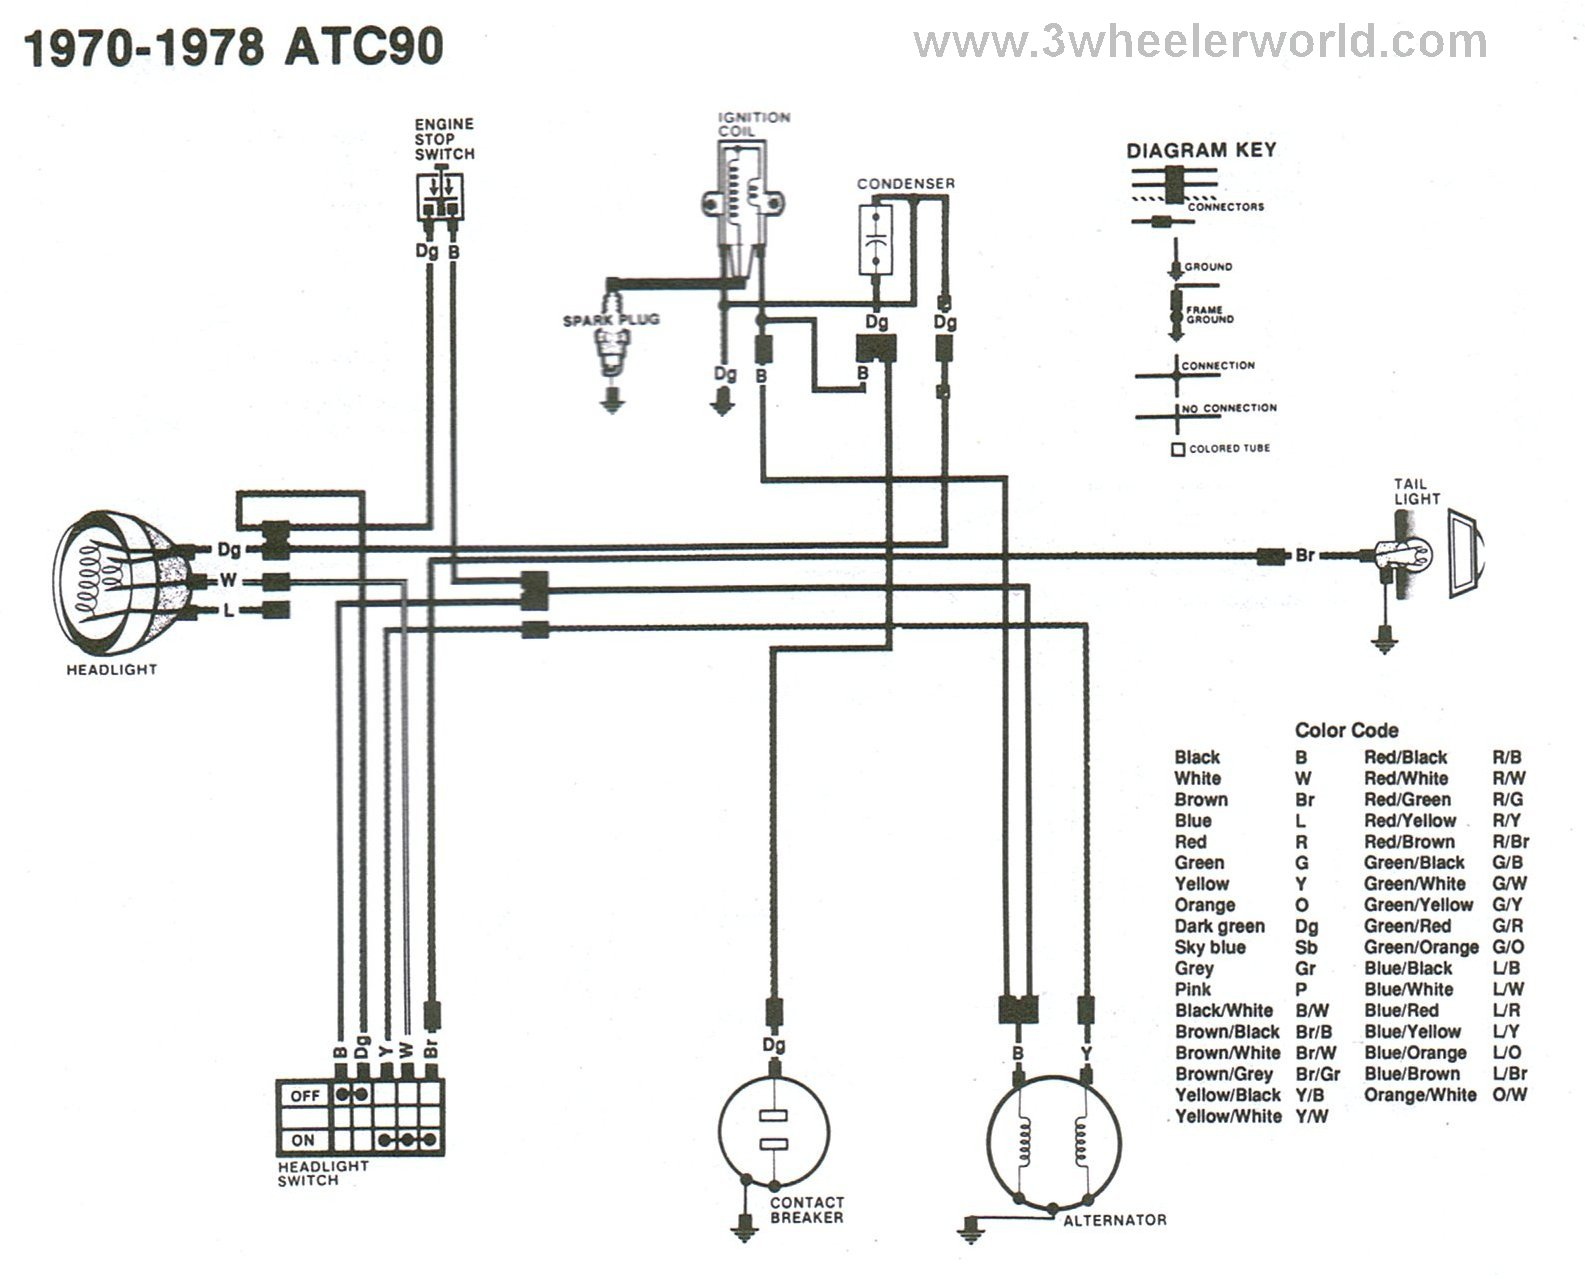 Atc90 Wiring Diagram Just Schematic Honda Sl350 3 Wheeler World Tech Help Diagrams Guitar